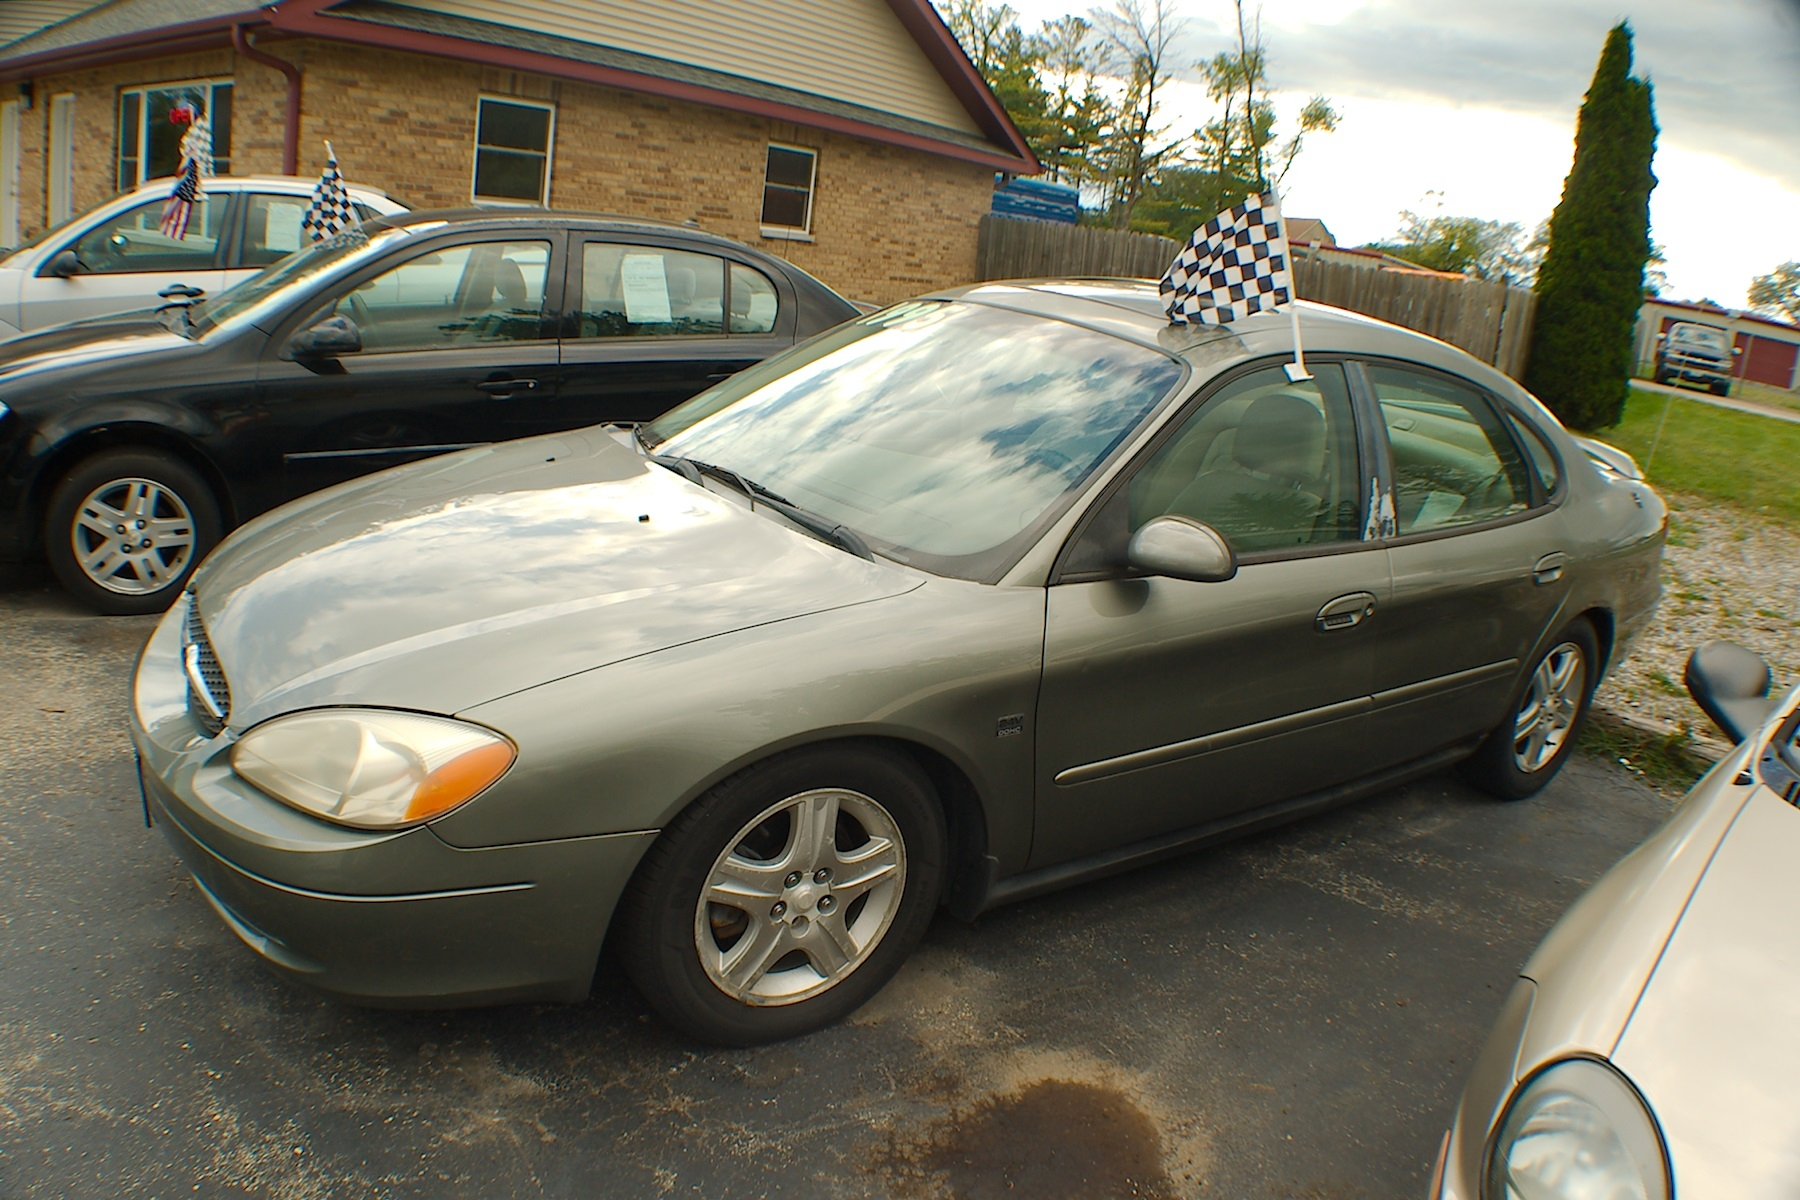 2001 Ford Taurus SEL Green Sedan Used Car Sale Antioch Zion Waukegan Lake County Illinois